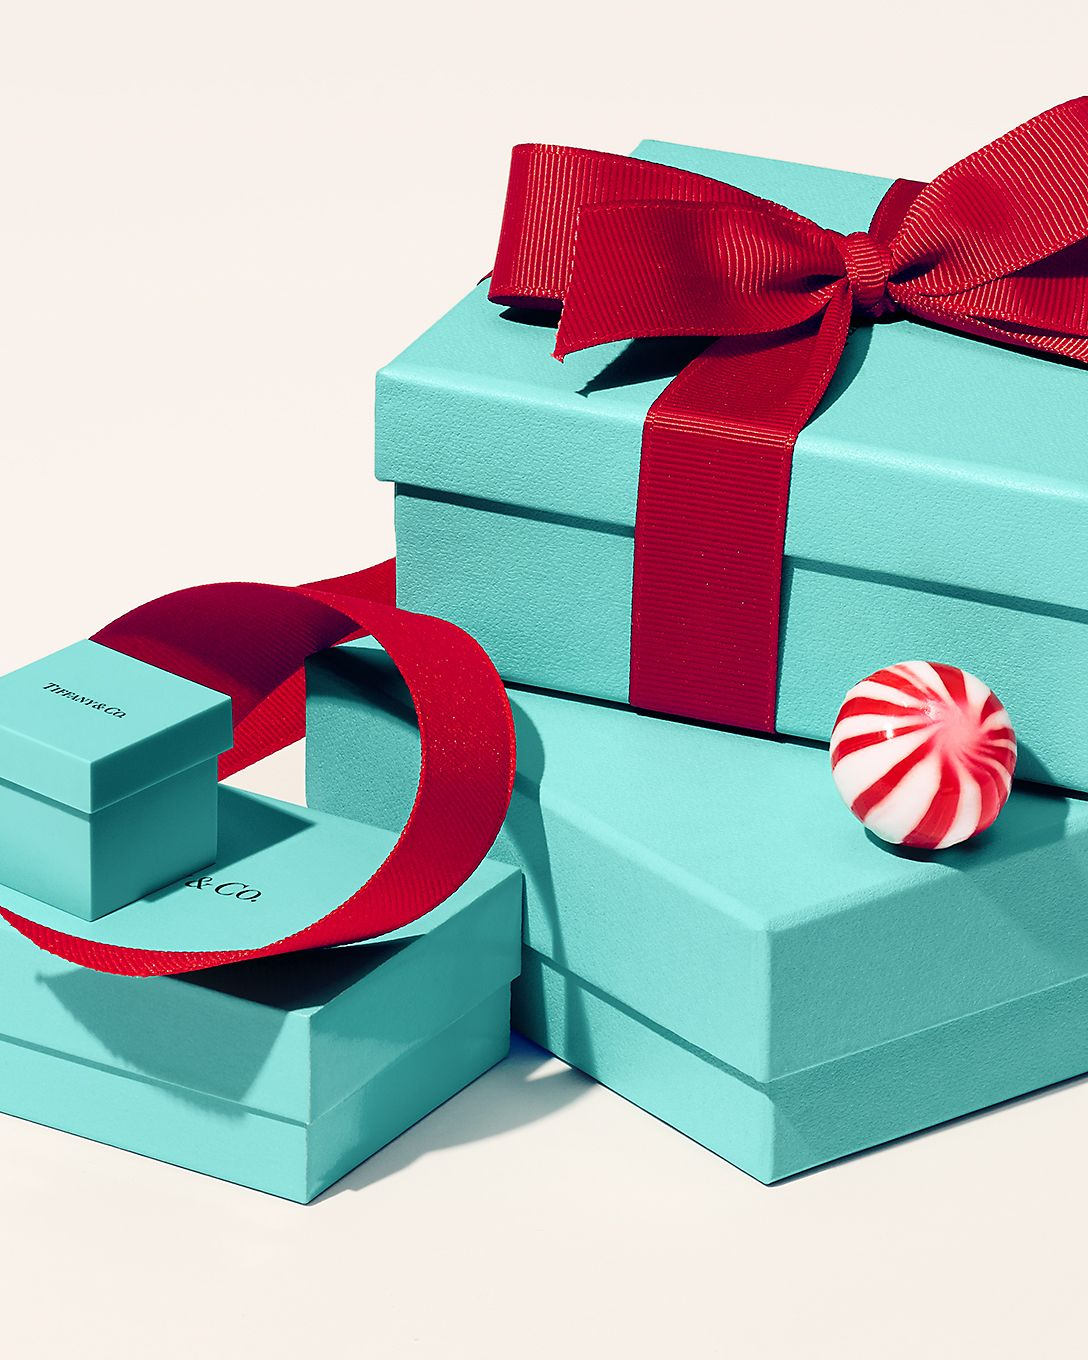 Shop Tiffany & Co. Gifts £300 & Under